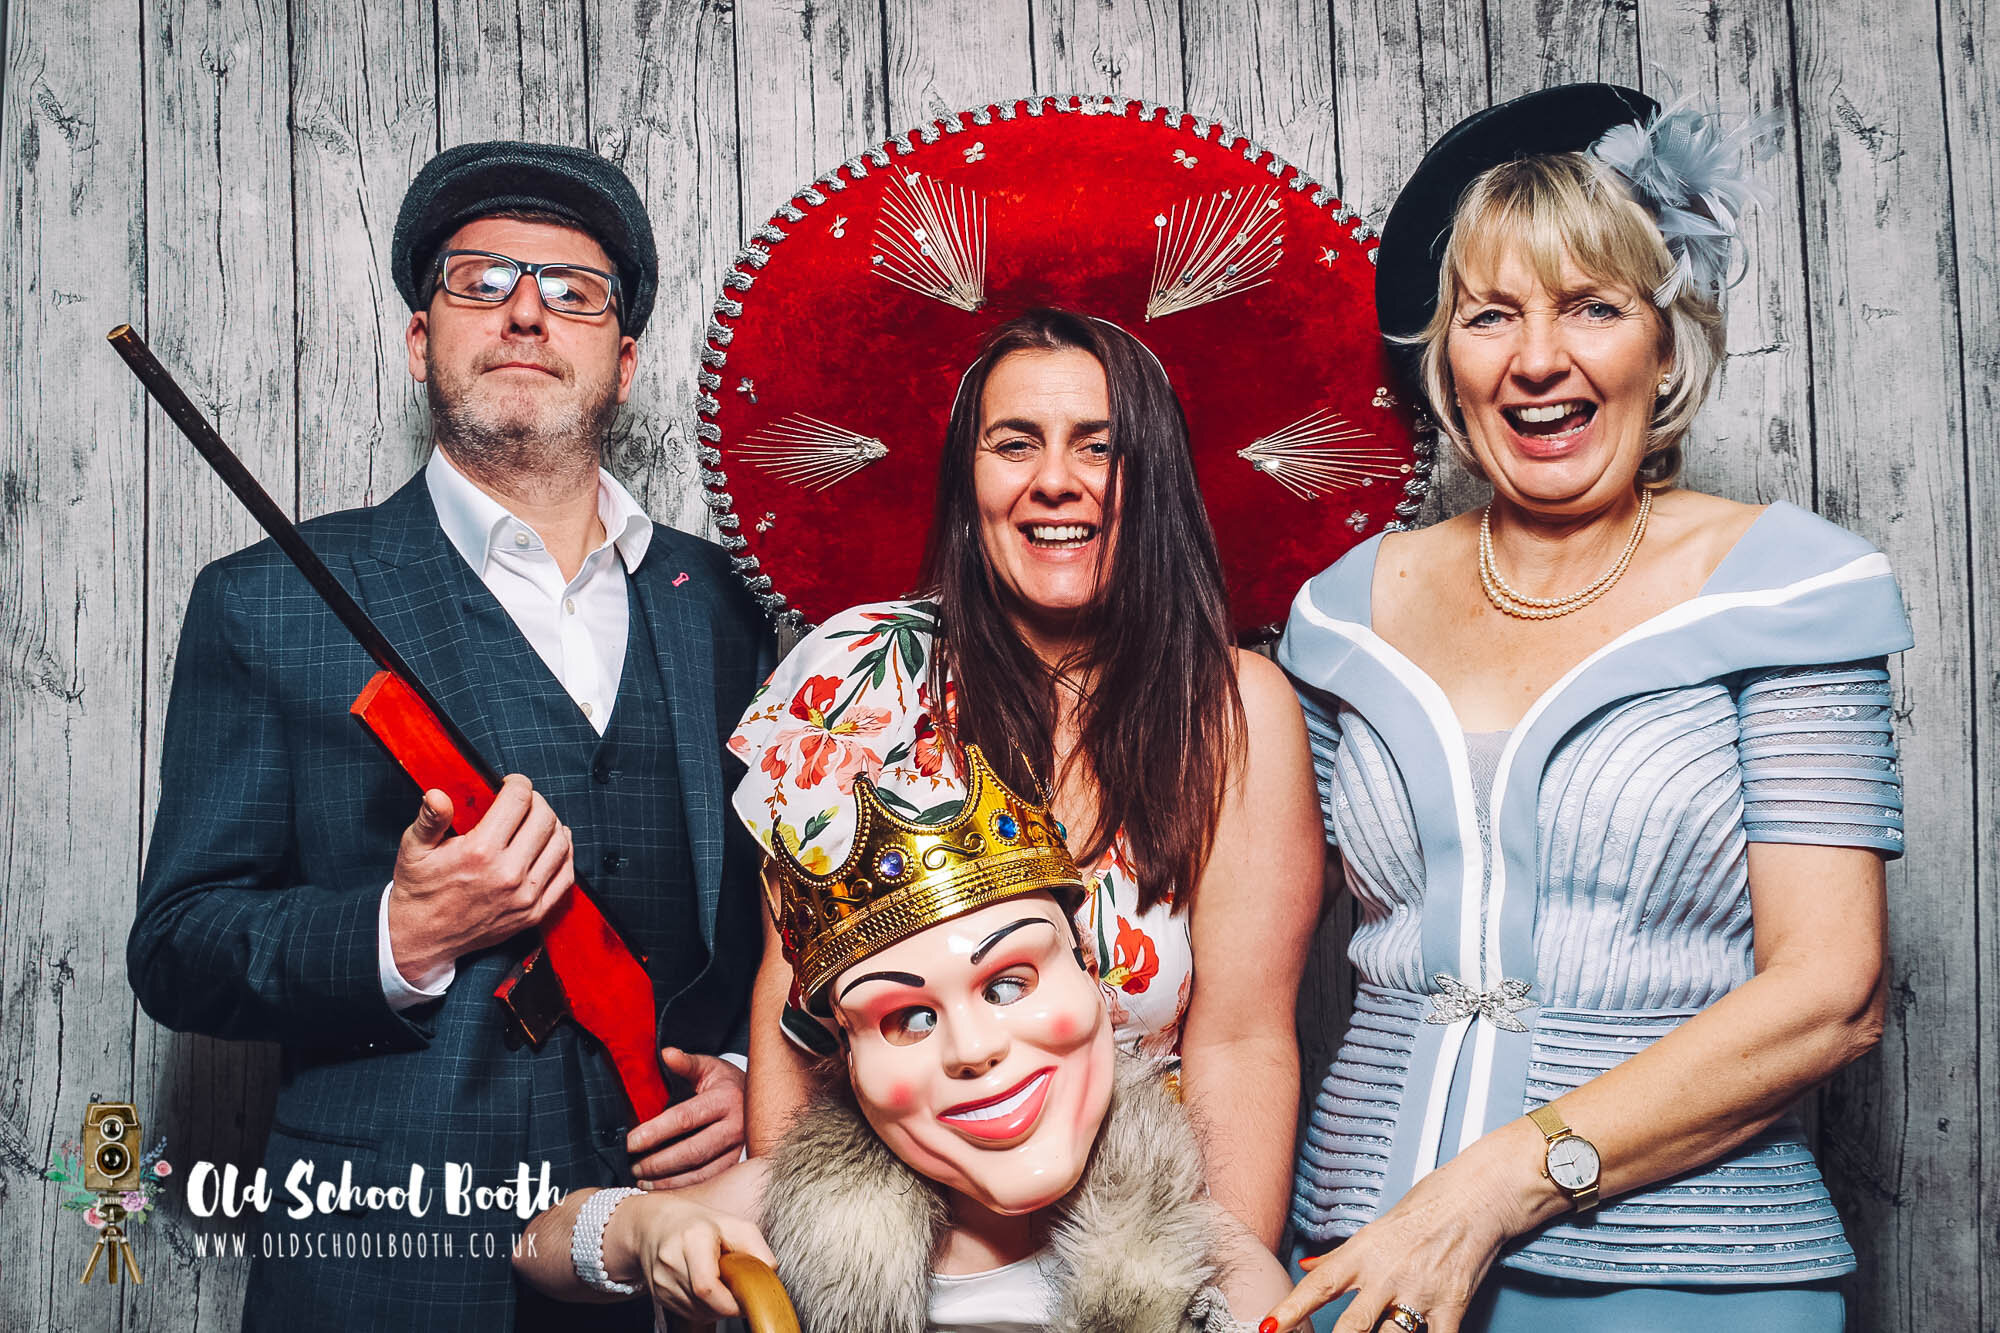 Best Vintage Photo Booth Hire UK